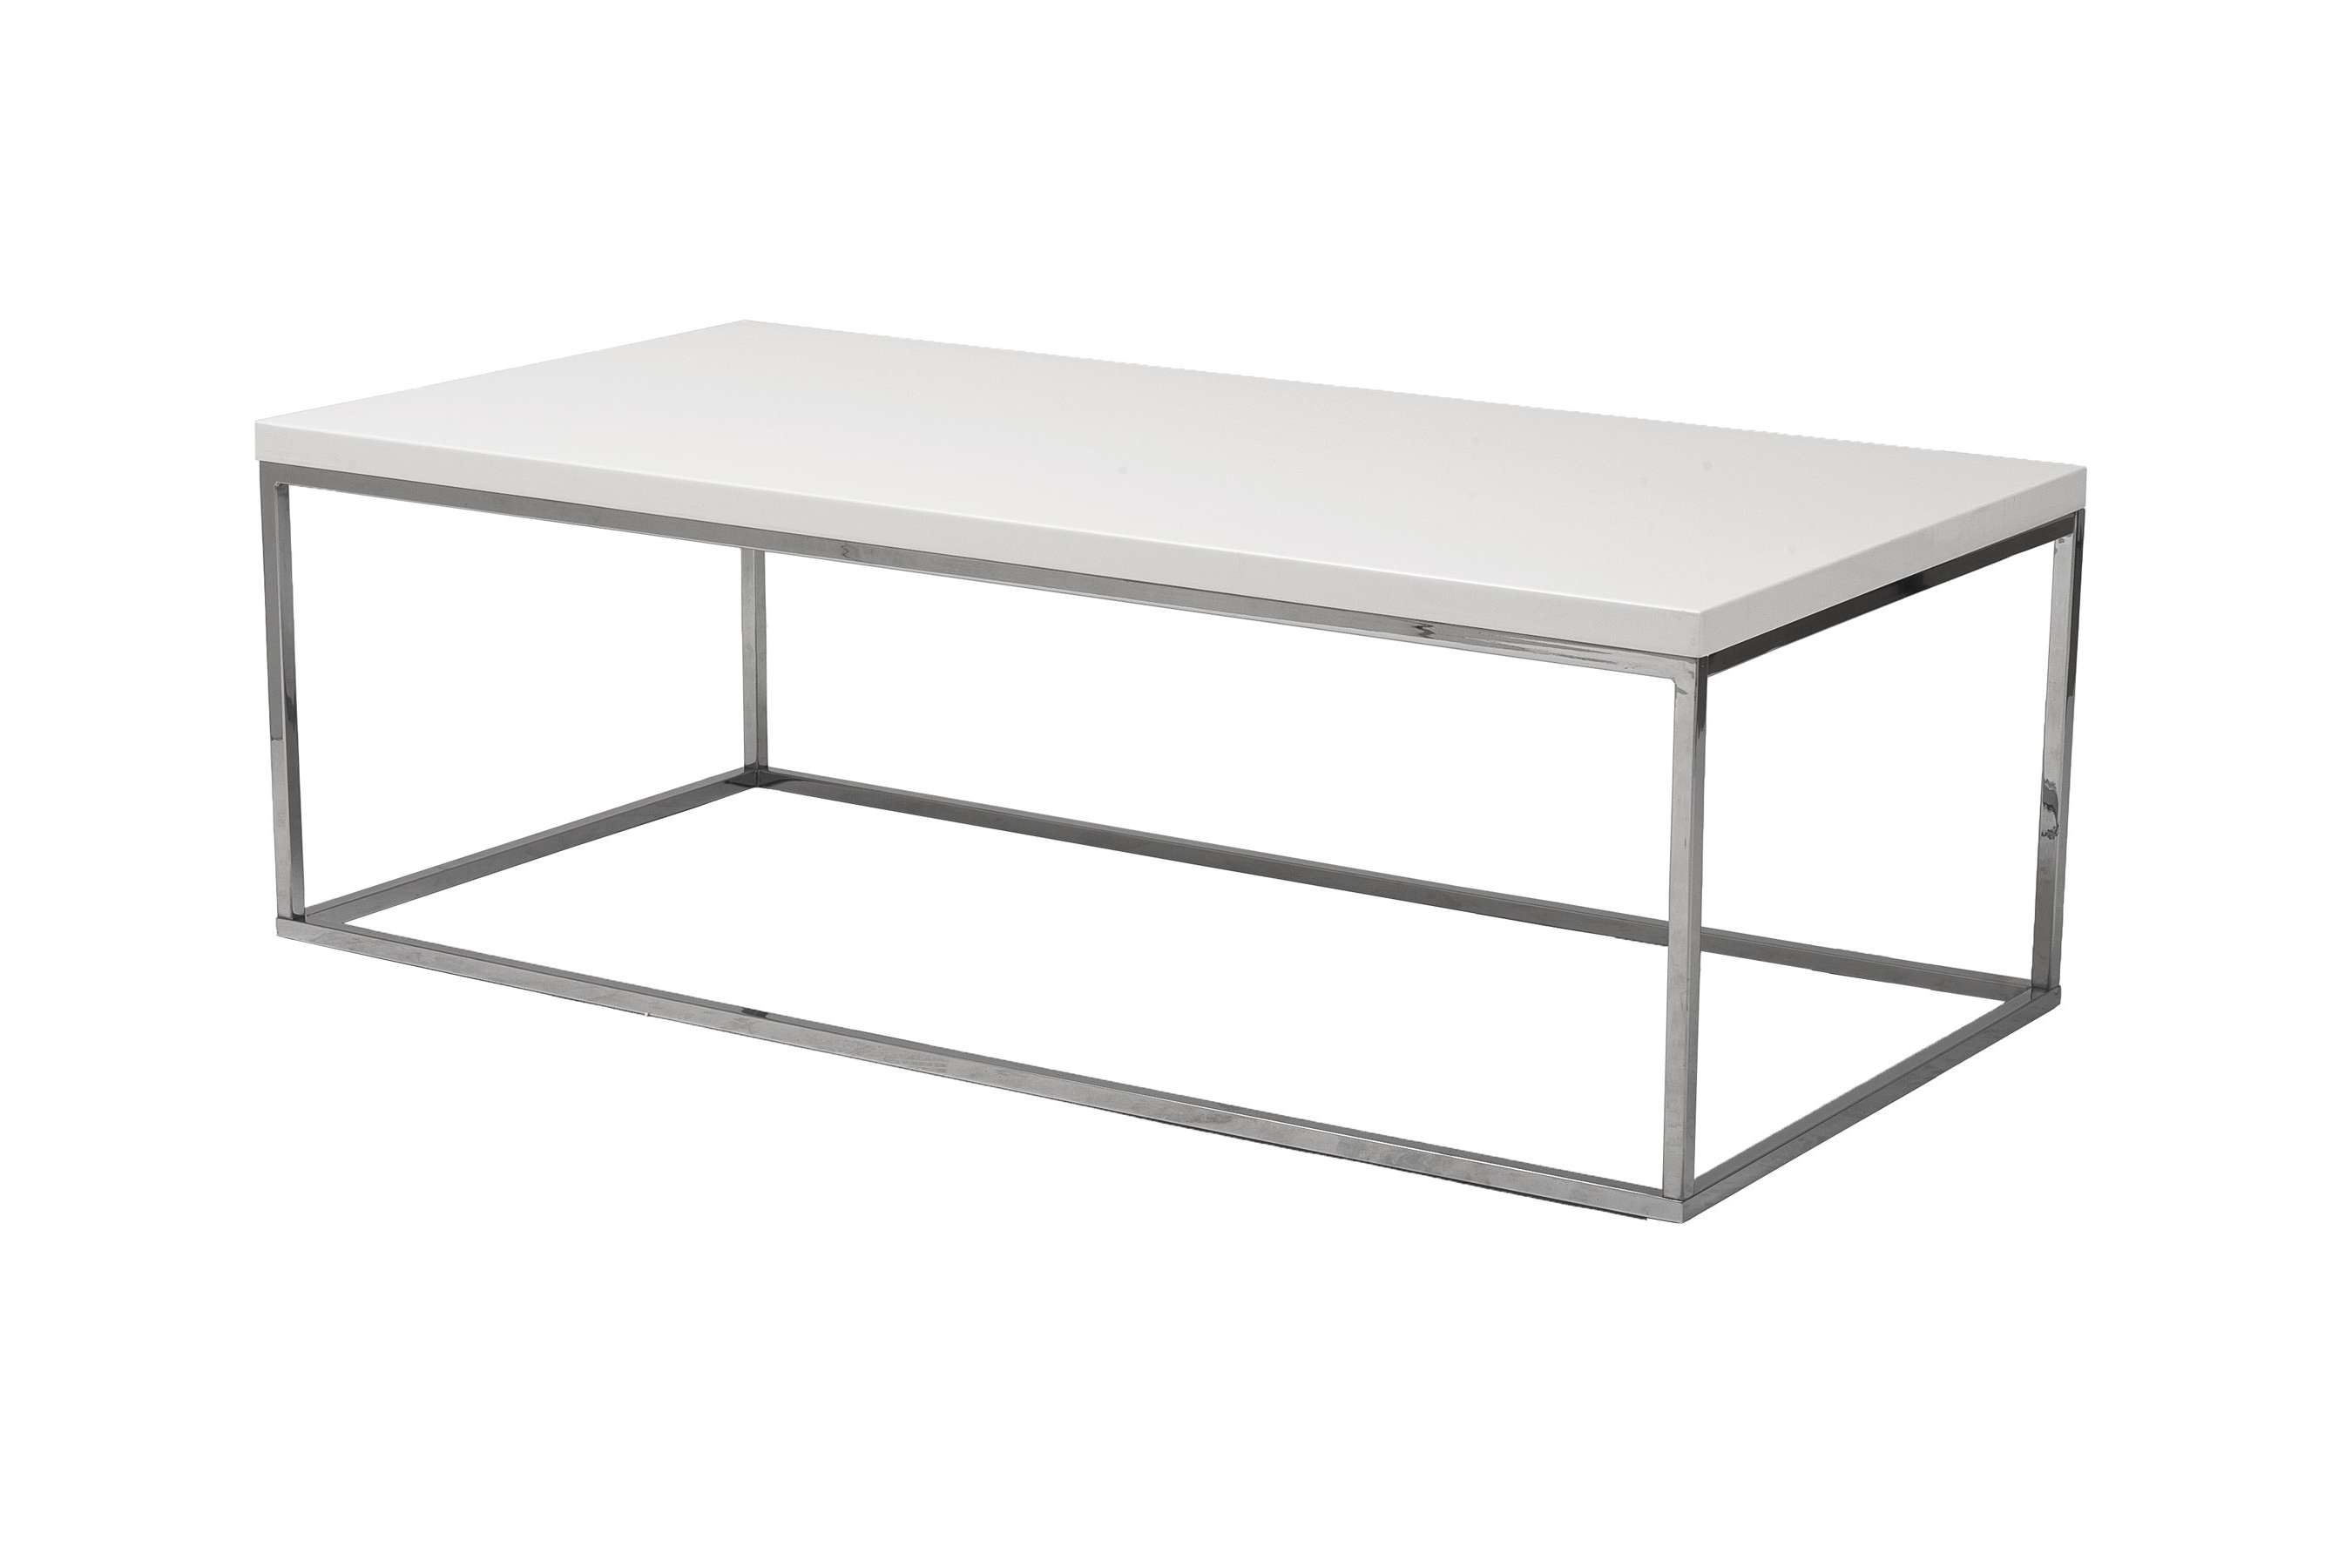 Coffee Table: Rectangular Coffee Table Simple Living Room For Well Known Rectangular Coffee Tables (View 10 of 20)